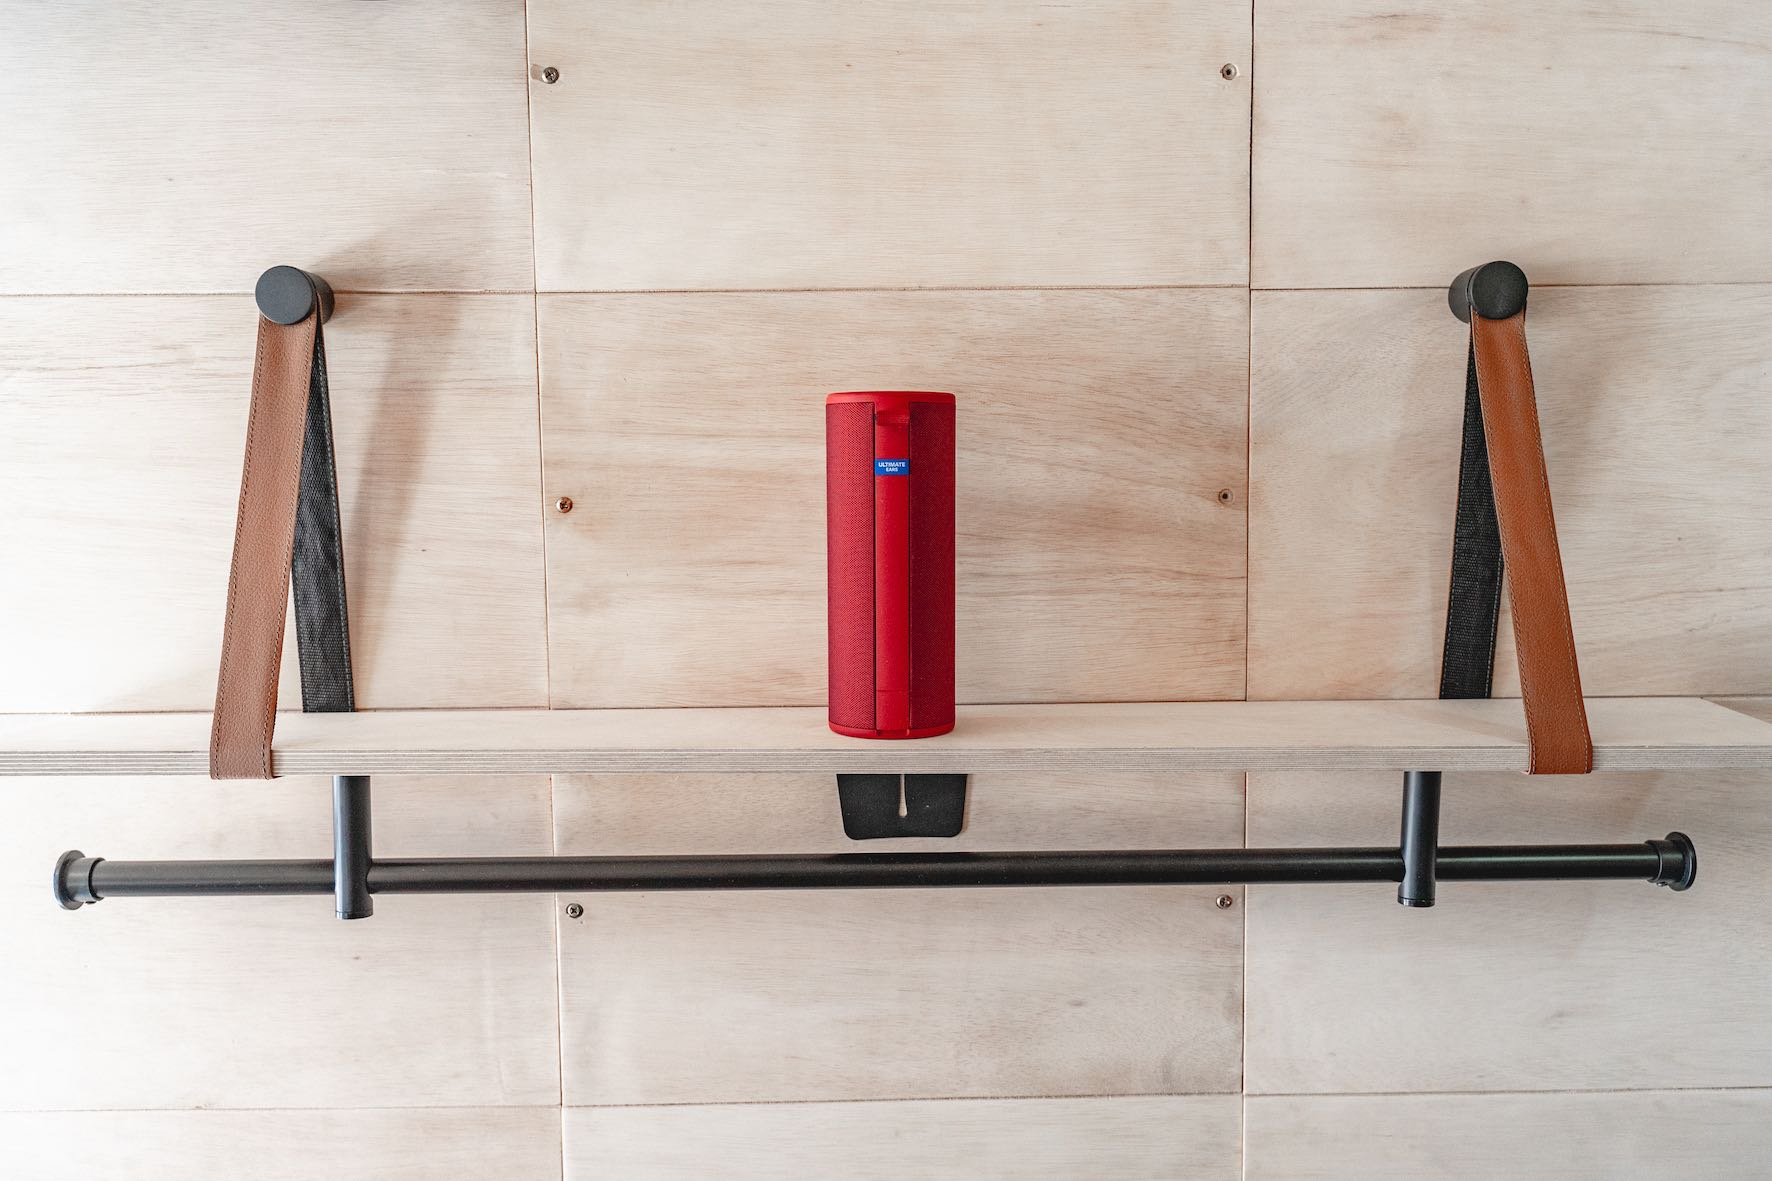 Introducing the awesome Ultimate Ears MEGABOOM 3 Wireless Speaker